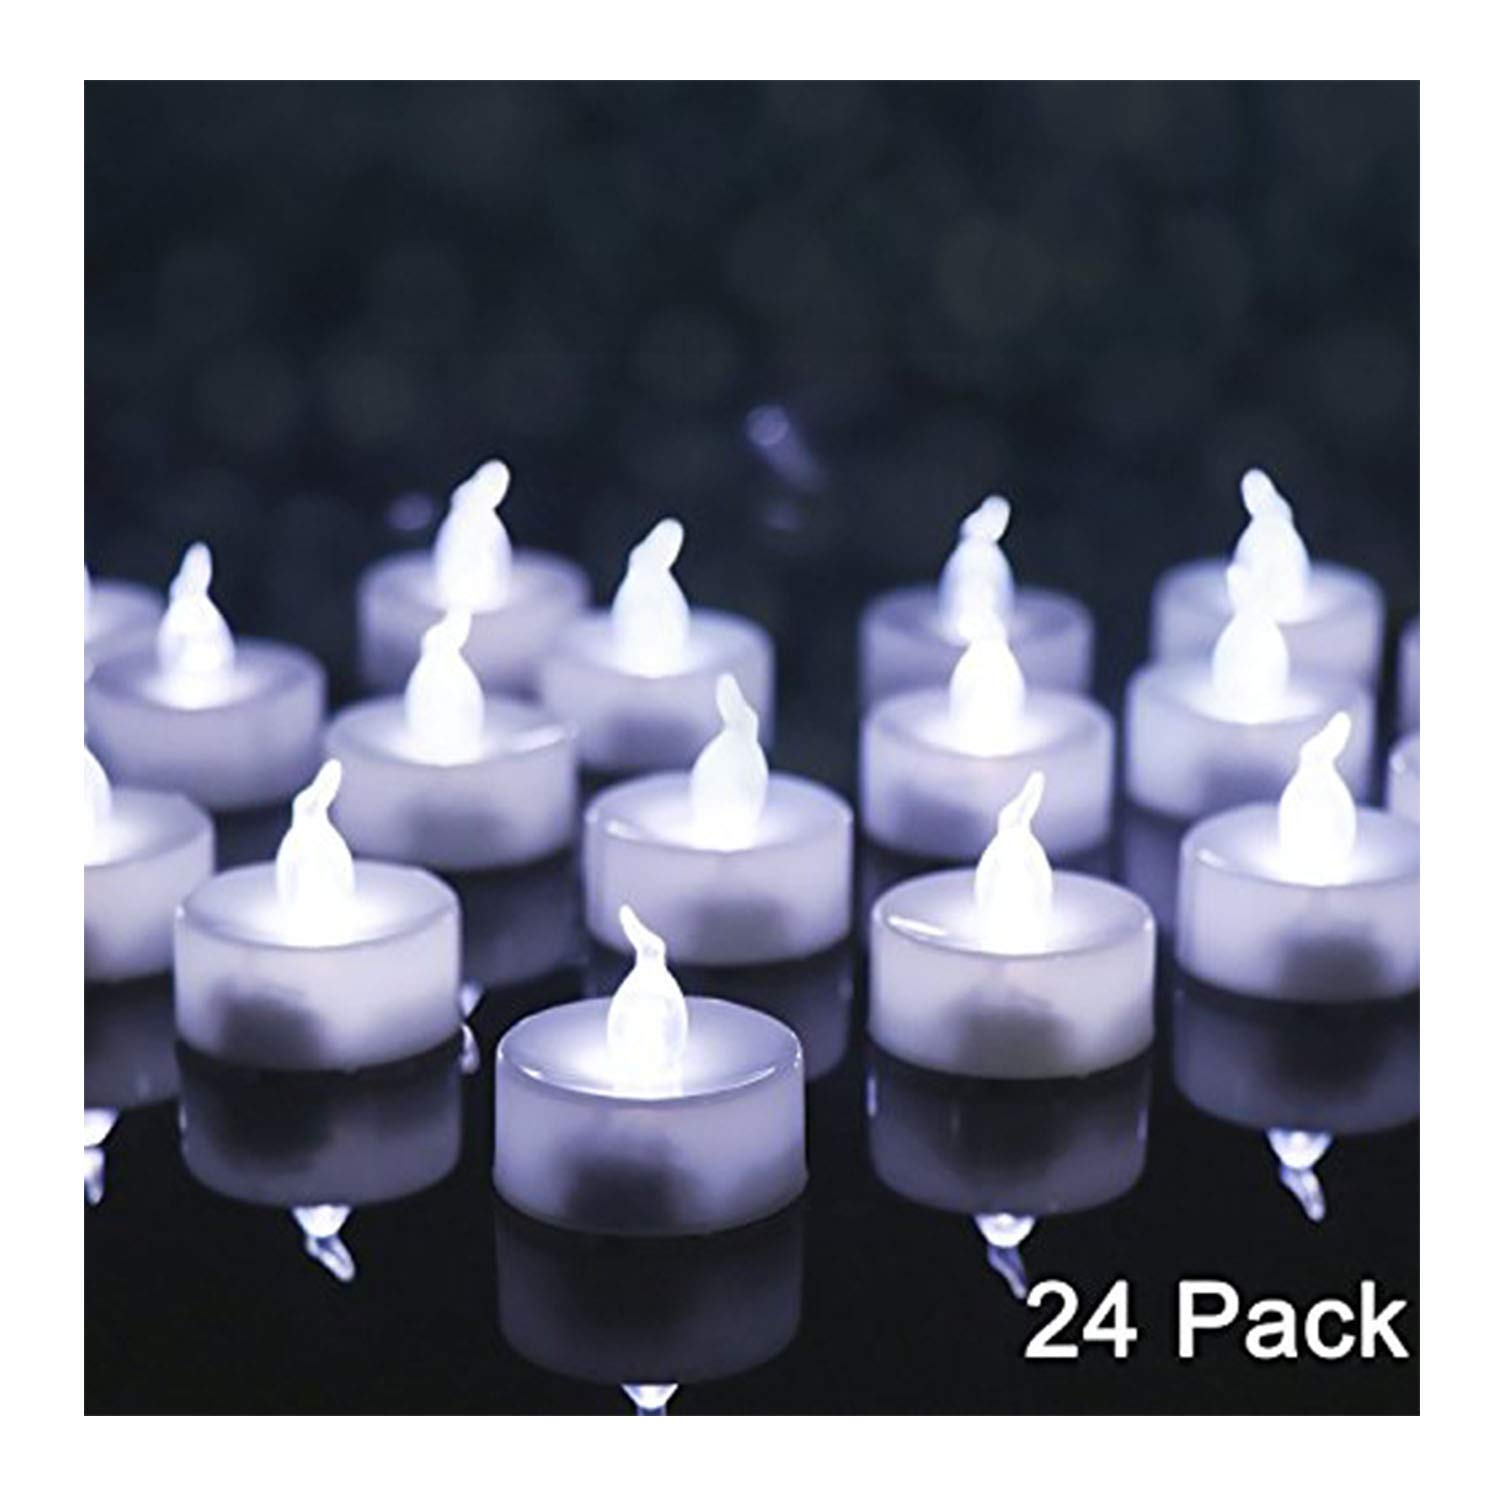 OMGAI 24 PCS LED Tea Lights Candles Battery-Powered Small Bright Flickering Flameless Candles for Home Decoration - Cool White by OMGAI